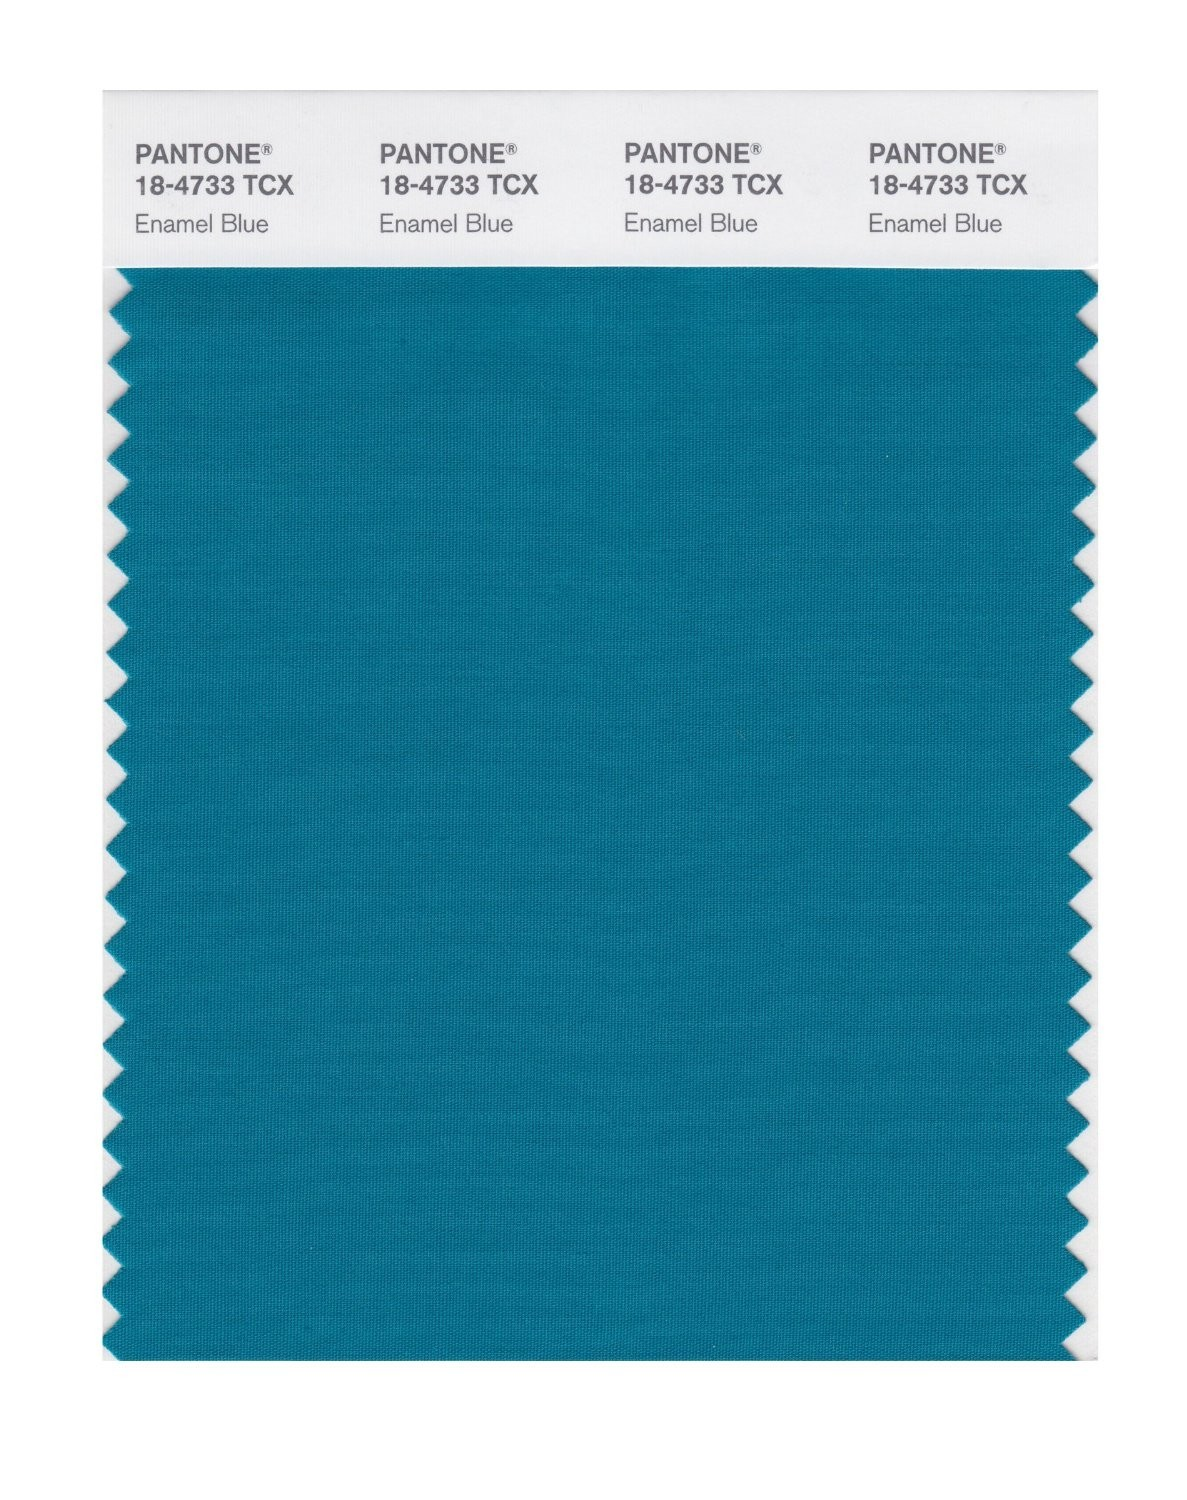 Pantone 18-4733 TCX Swatch Card Enamel Blue